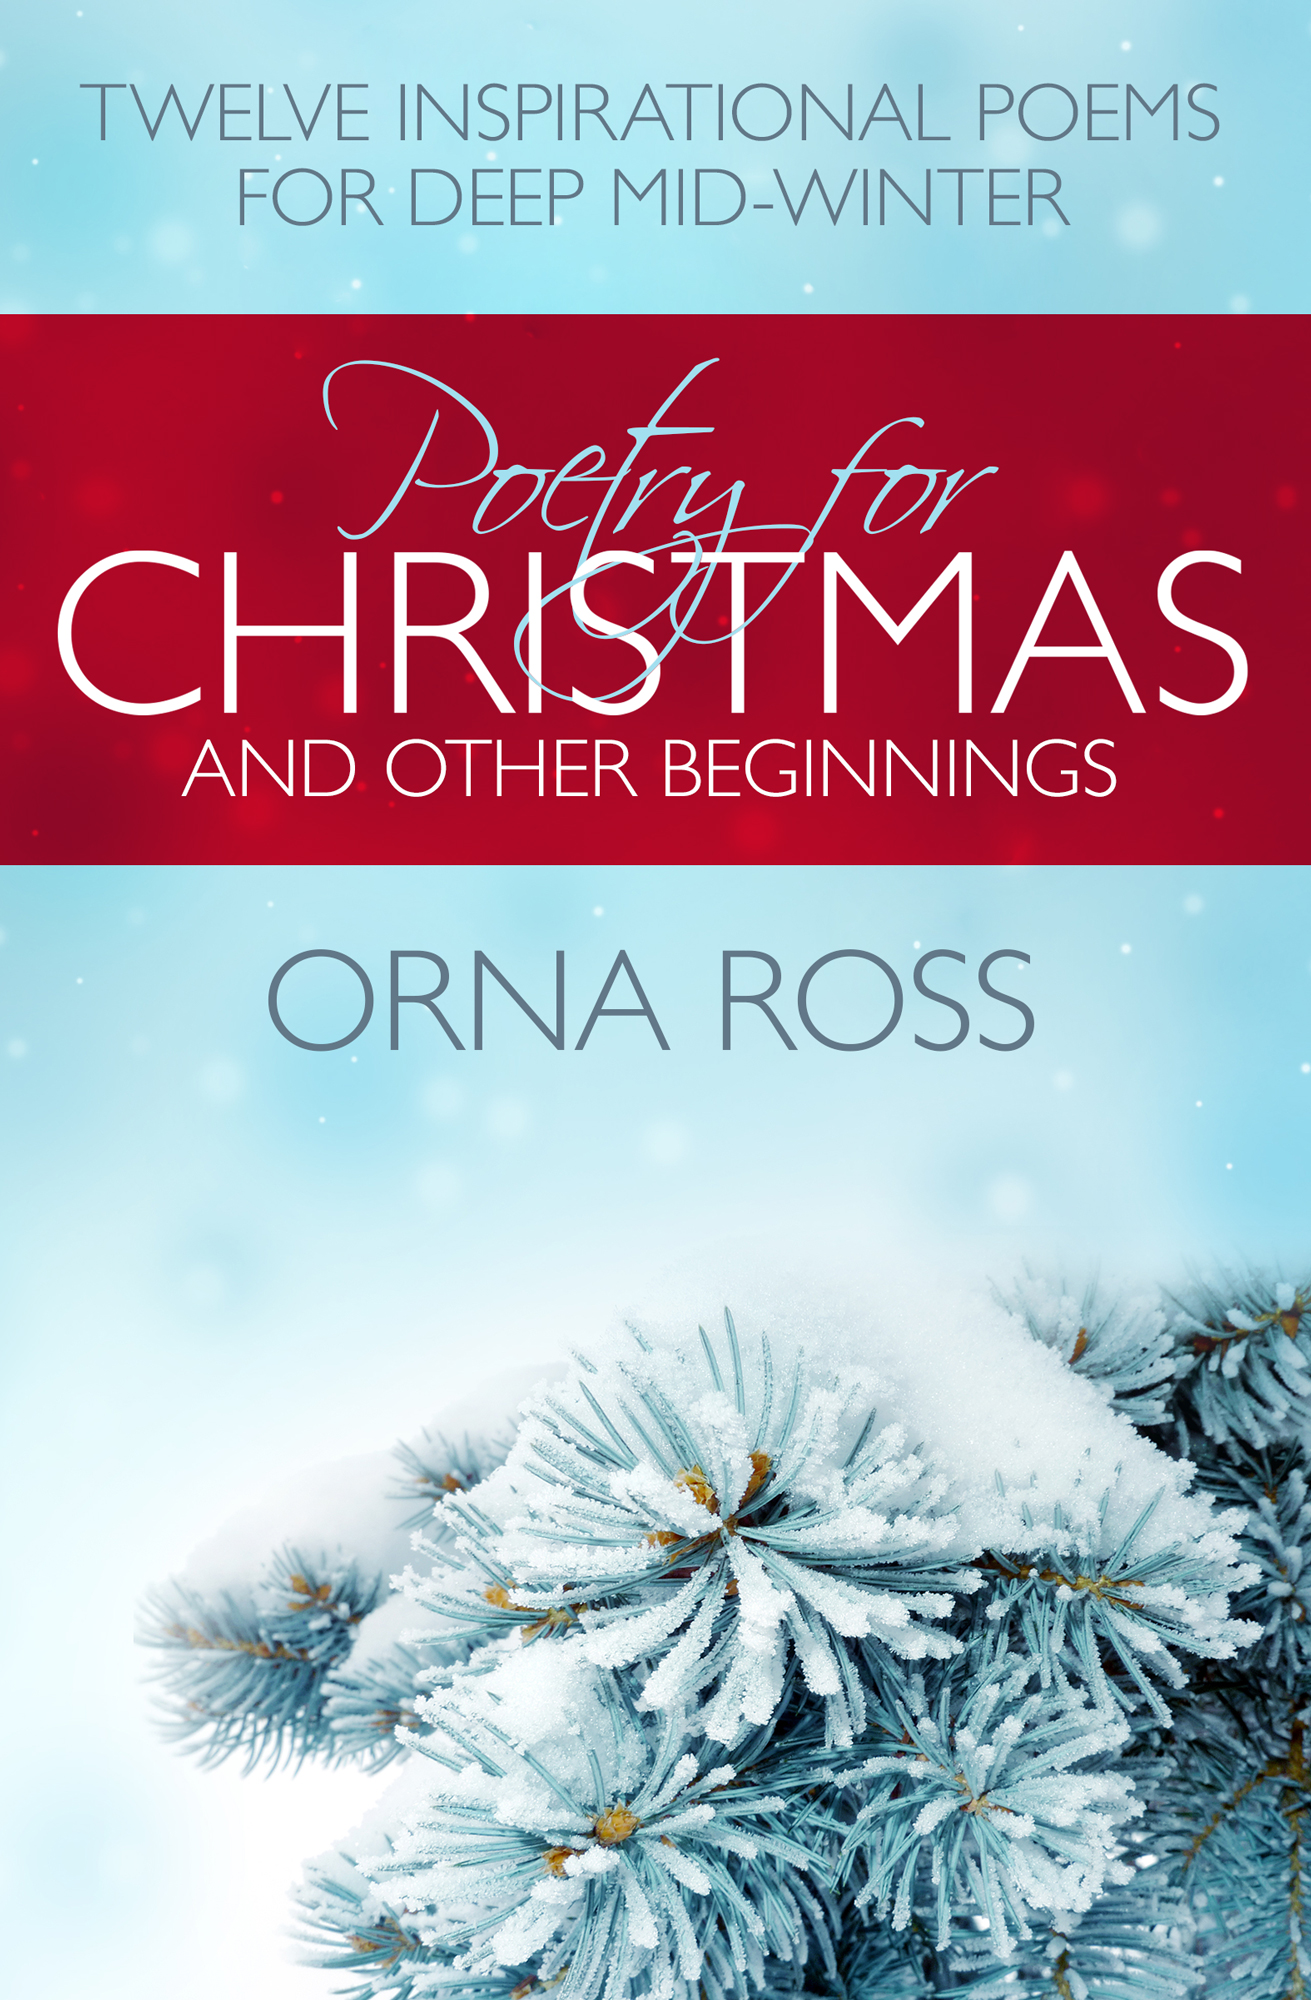 Poetry For Christmas & Other Beginnings: Twelve Inspirational Poems for Deep Mid-Winter